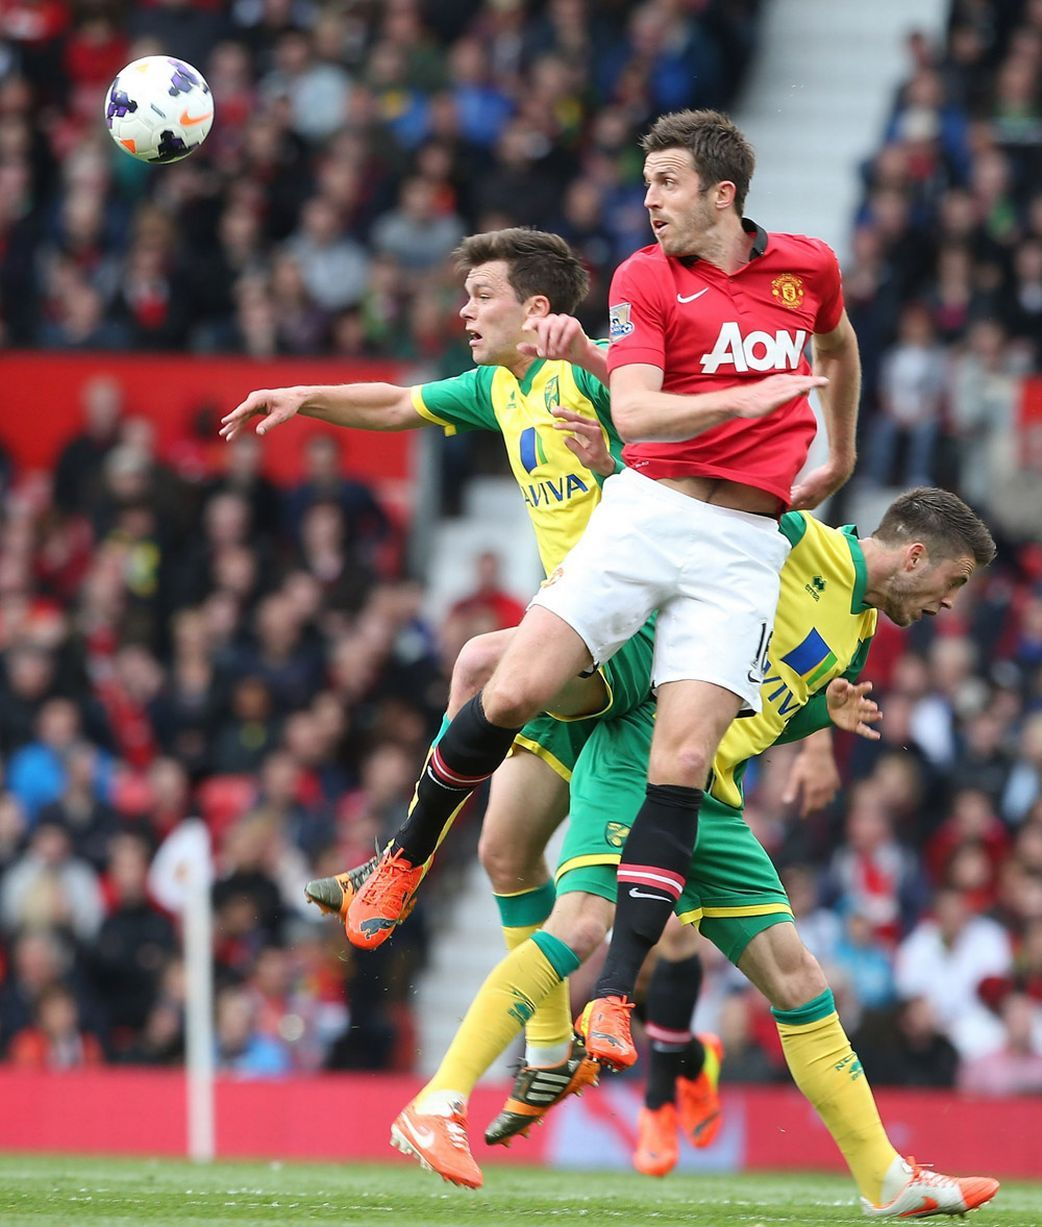 Man United 4 0 Norwich Red Devils Record Easy Win As Ryan Giggs Makes Managerial Bow Man United Michael Carrick The Unit